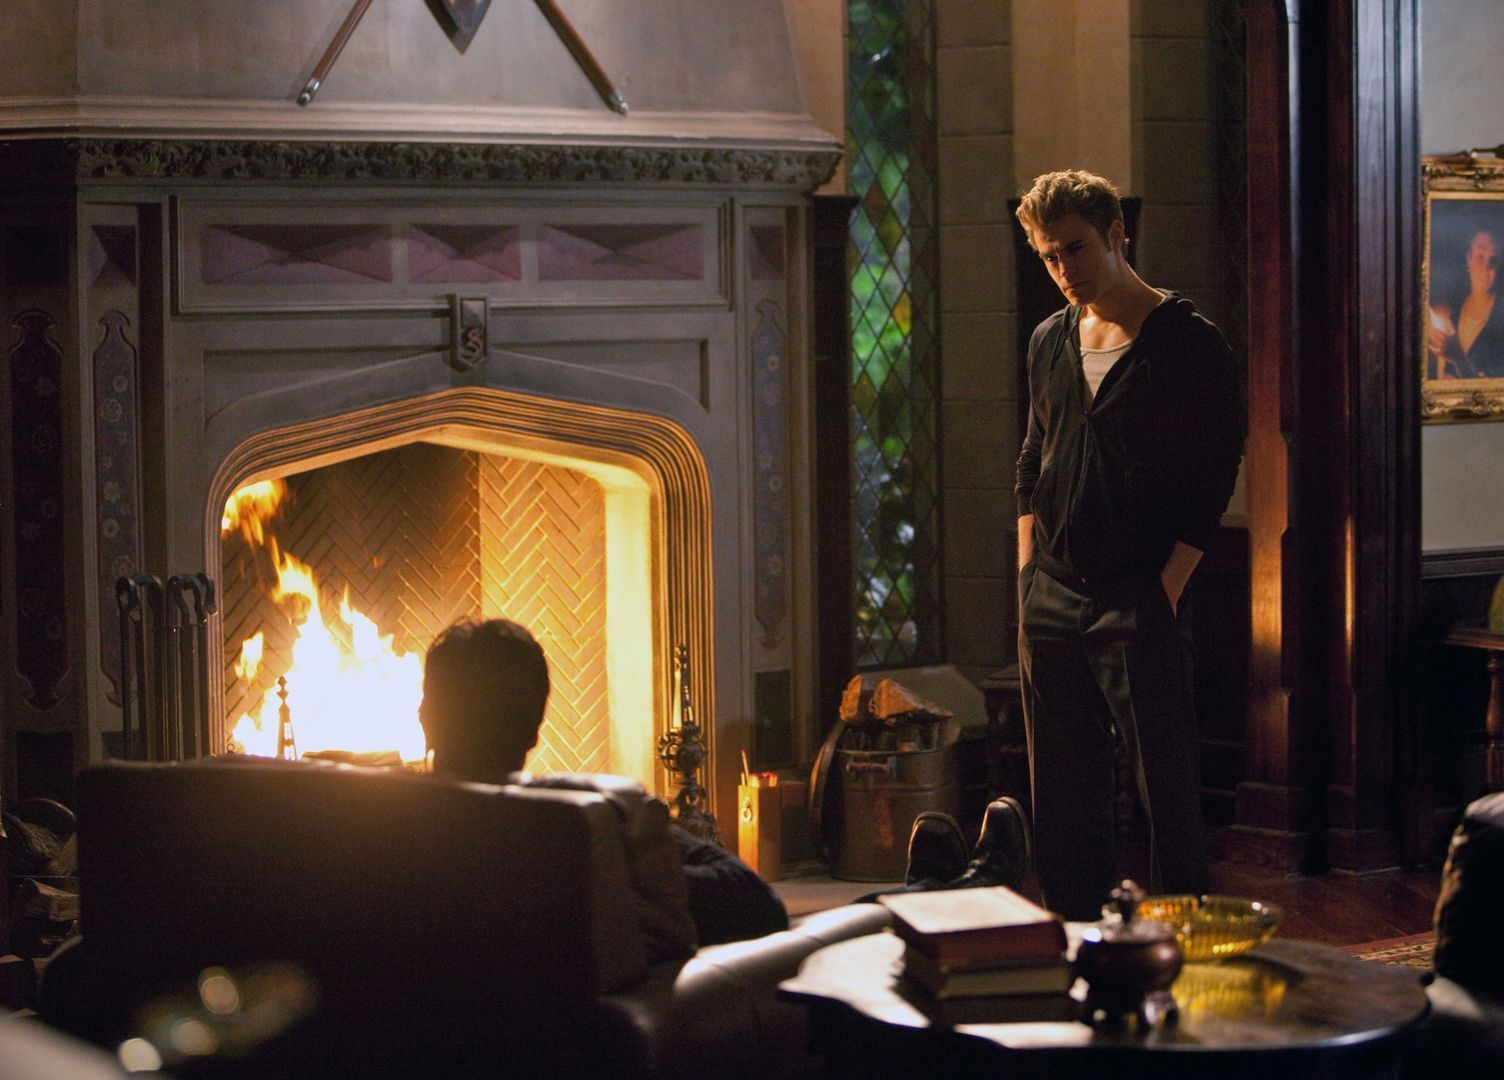 http://images2.fanpop.com/image/photos/11300000/1x20-Blood-Brothers-Promotional-Photos-the-vampire-diaries-tv-show-11380911-1504-1080.jpg